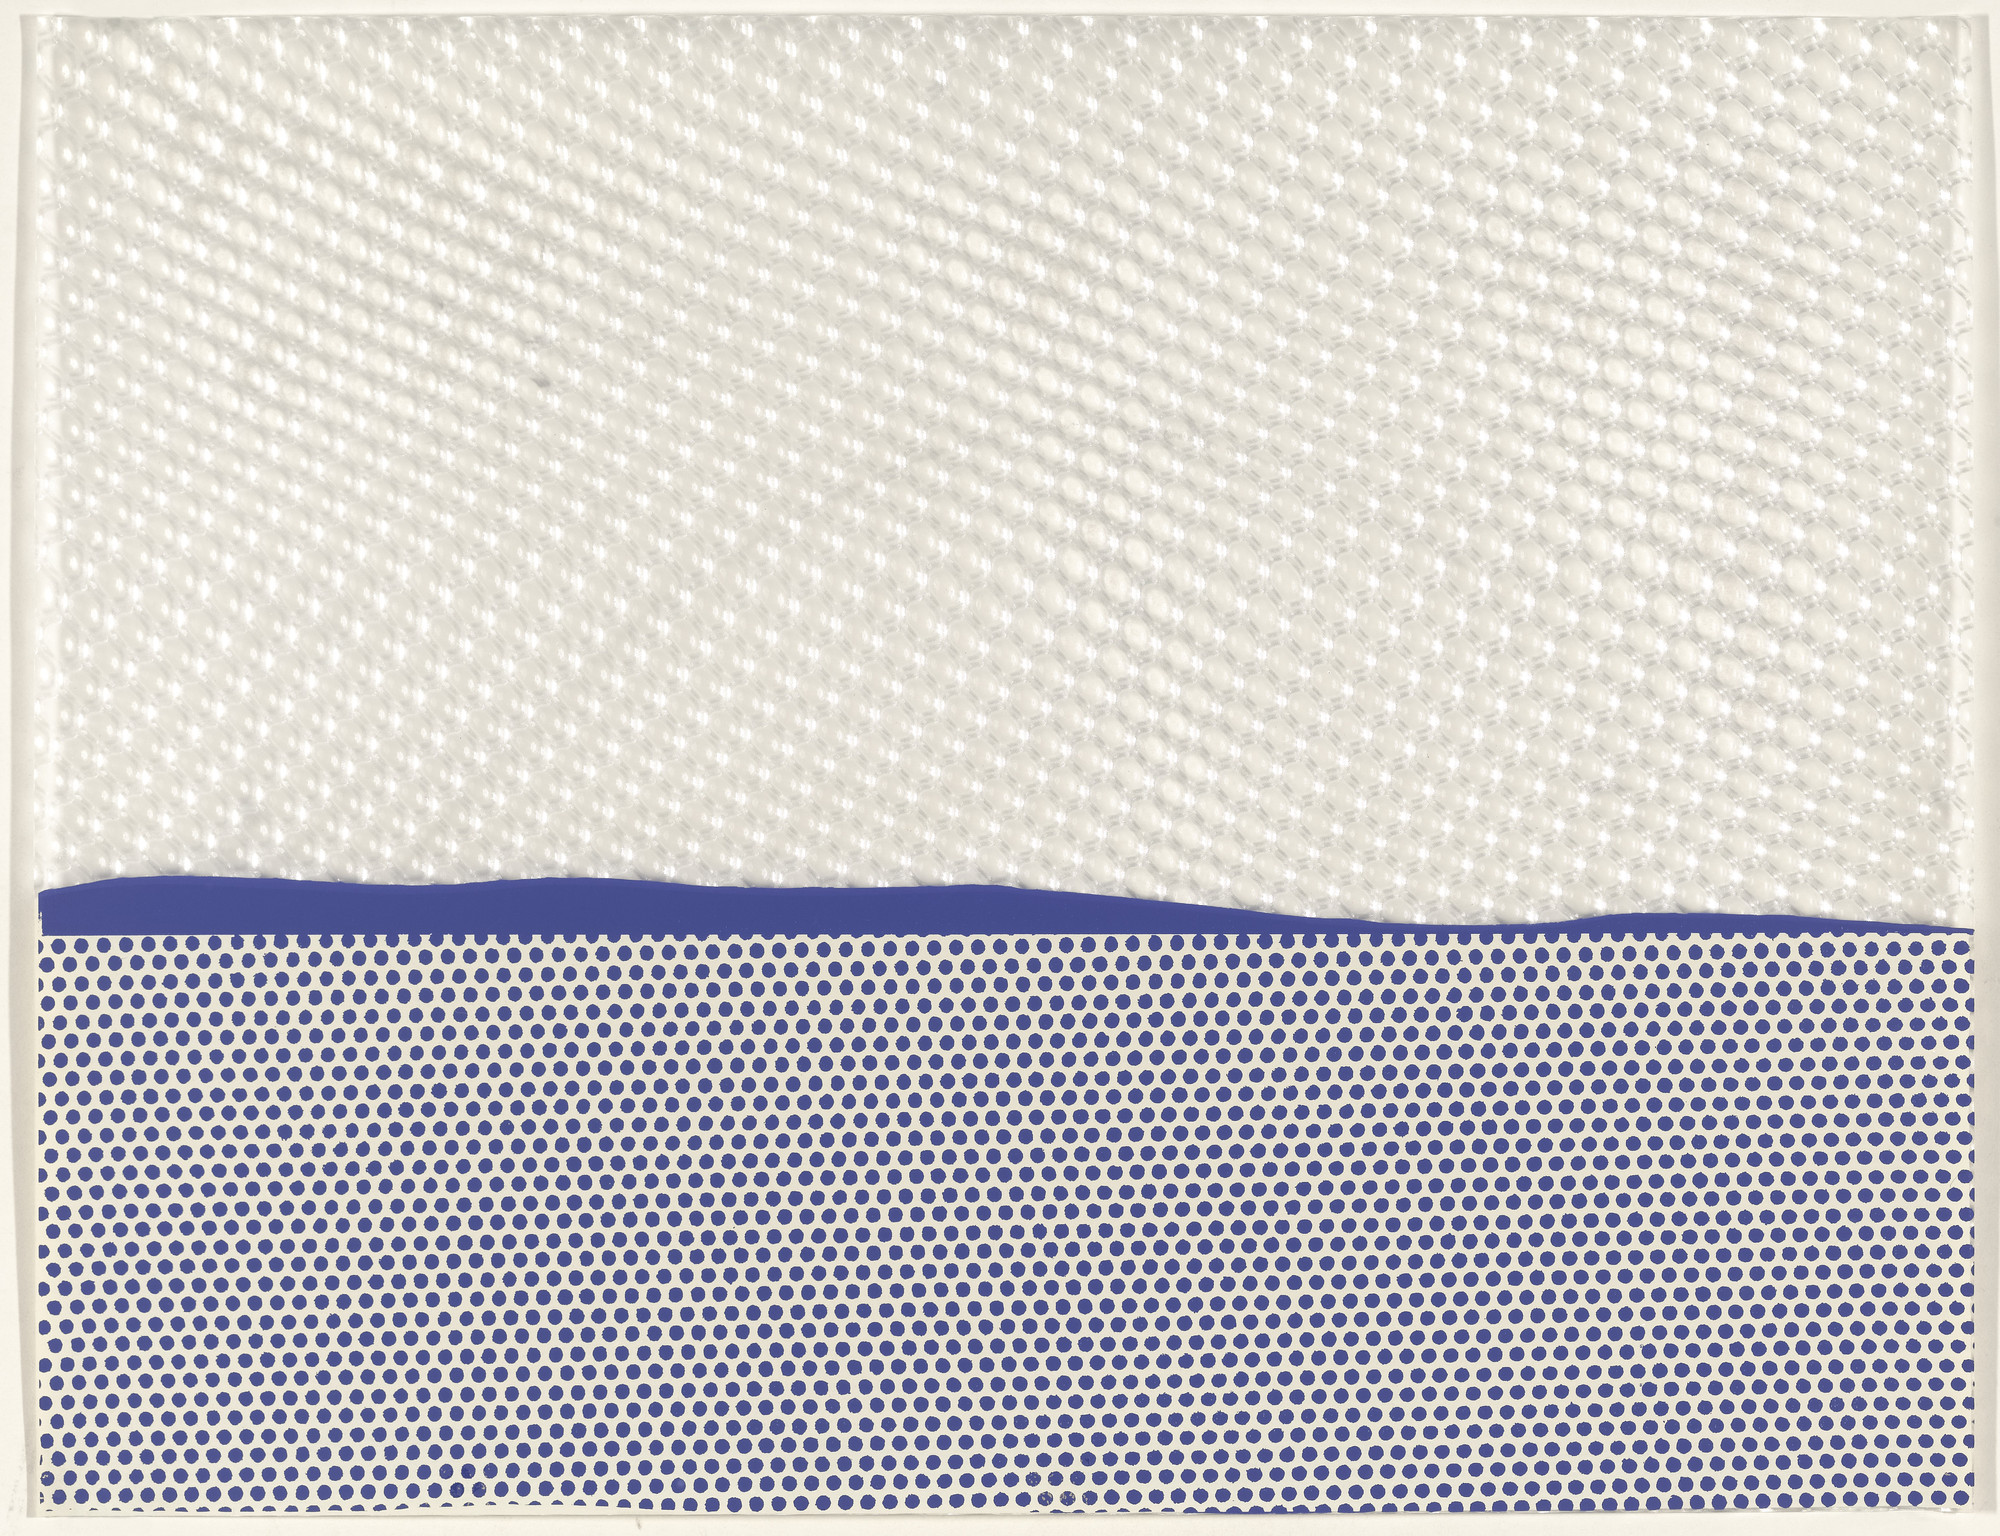 Roy Lichtenstein. Seascape I from New York Ten. 1964, published 1965